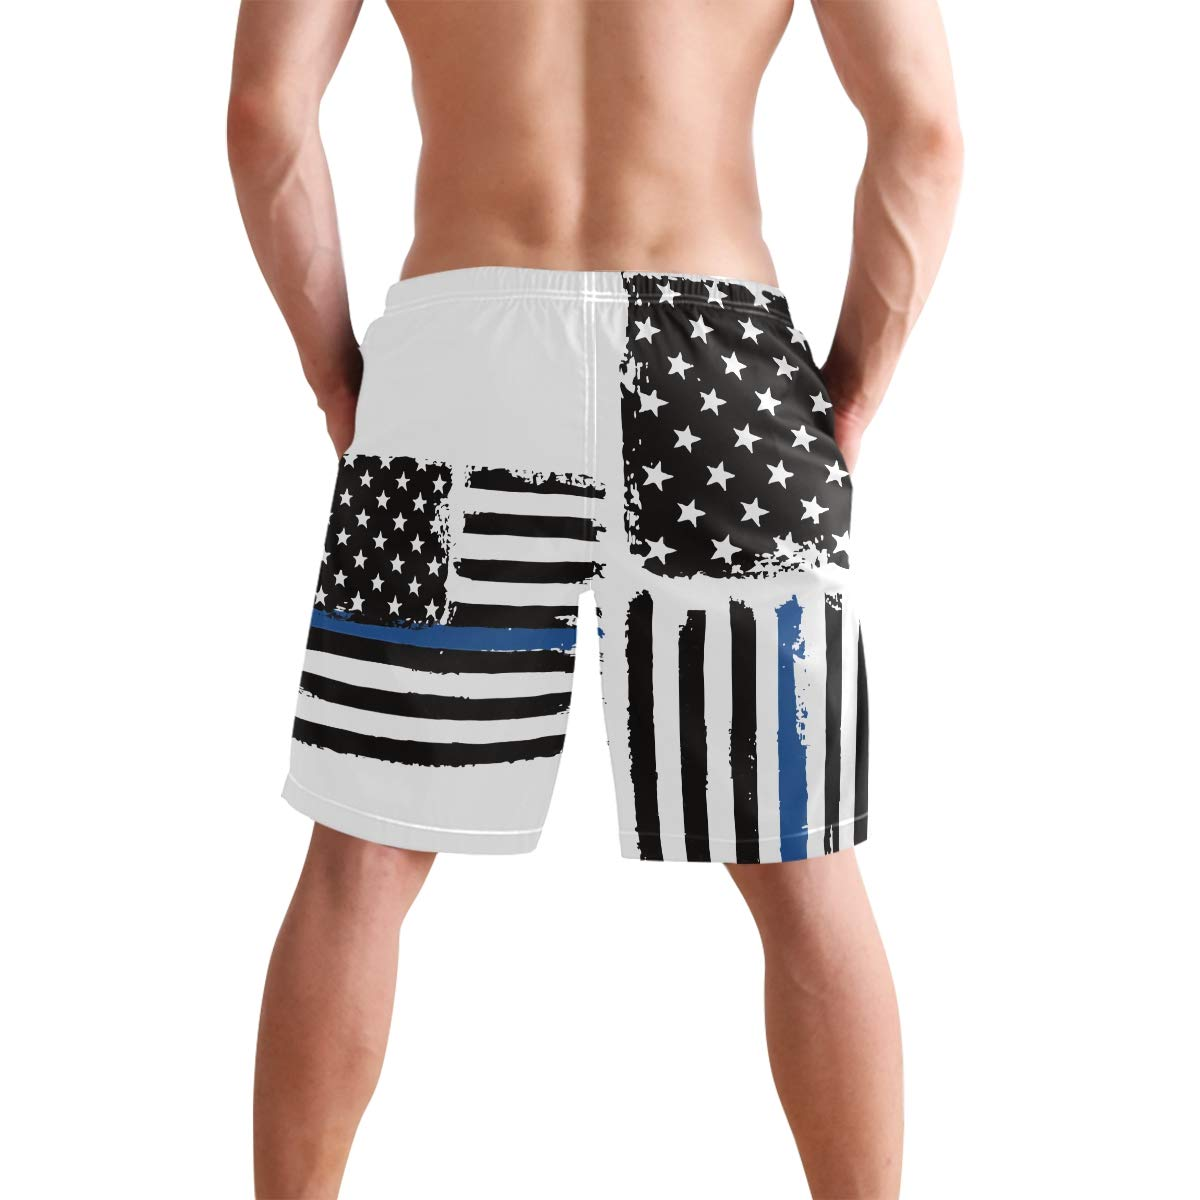 DongDongQiang Men Summer Police Thin Blue Line Flag Quick Dry Volleyball Beach Shorts Board Shorts